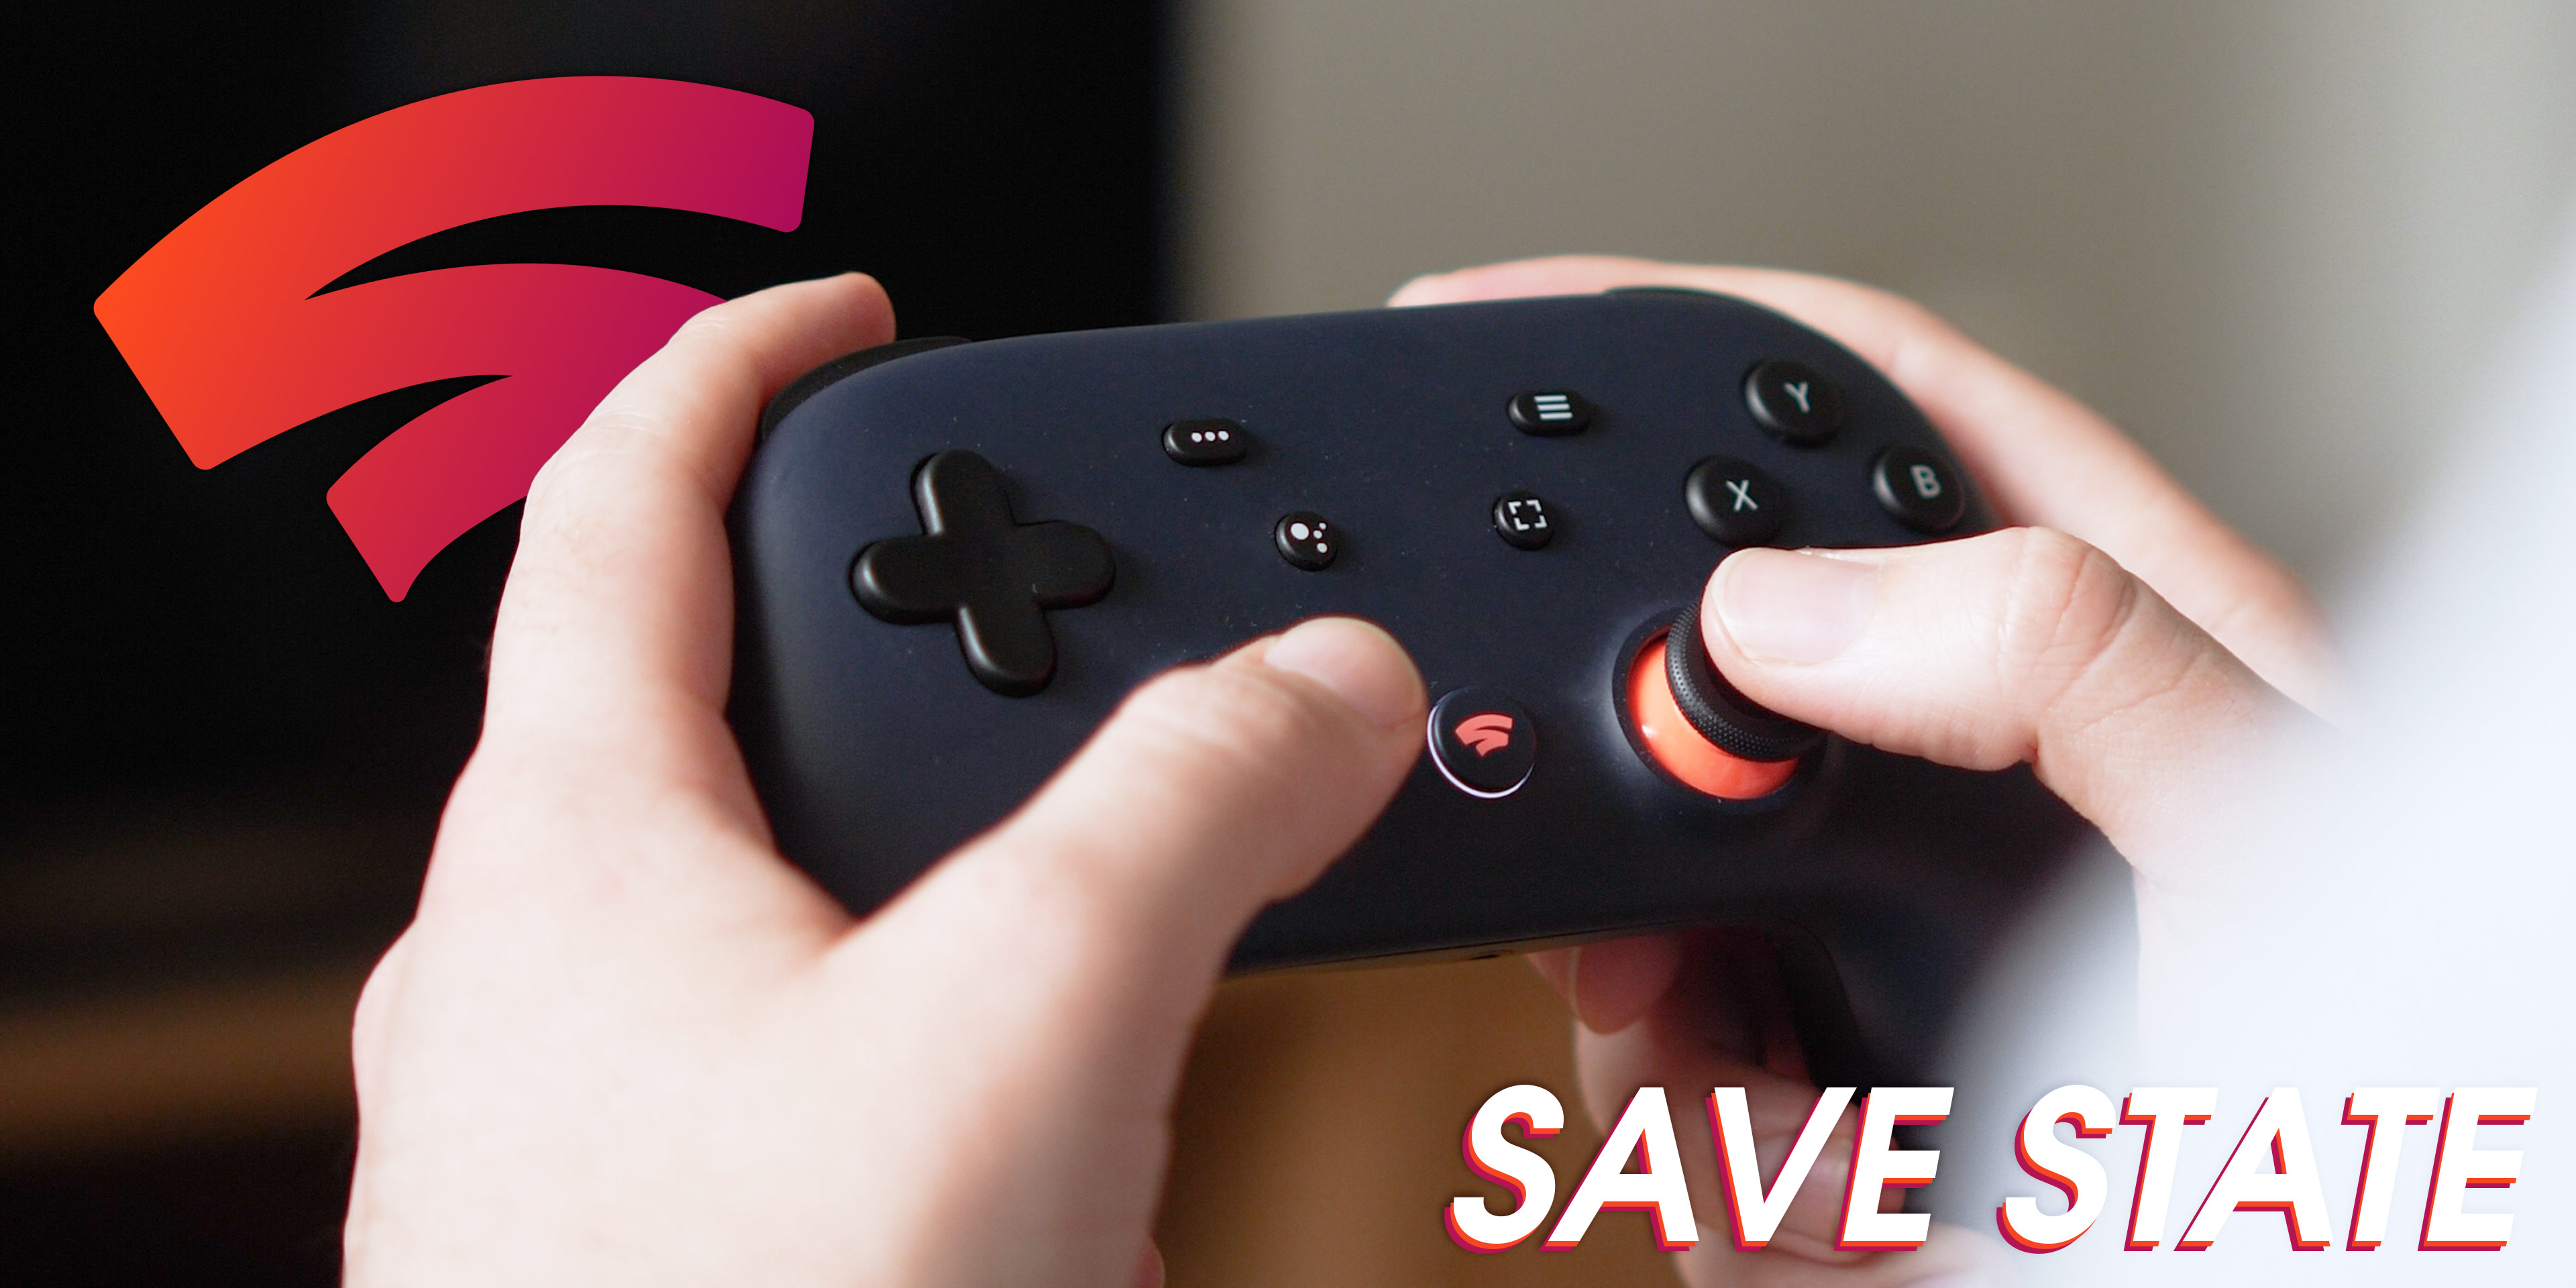 Stadia 'Save State' September 2020: This month in Google Stadia [Video] - 9to5Google